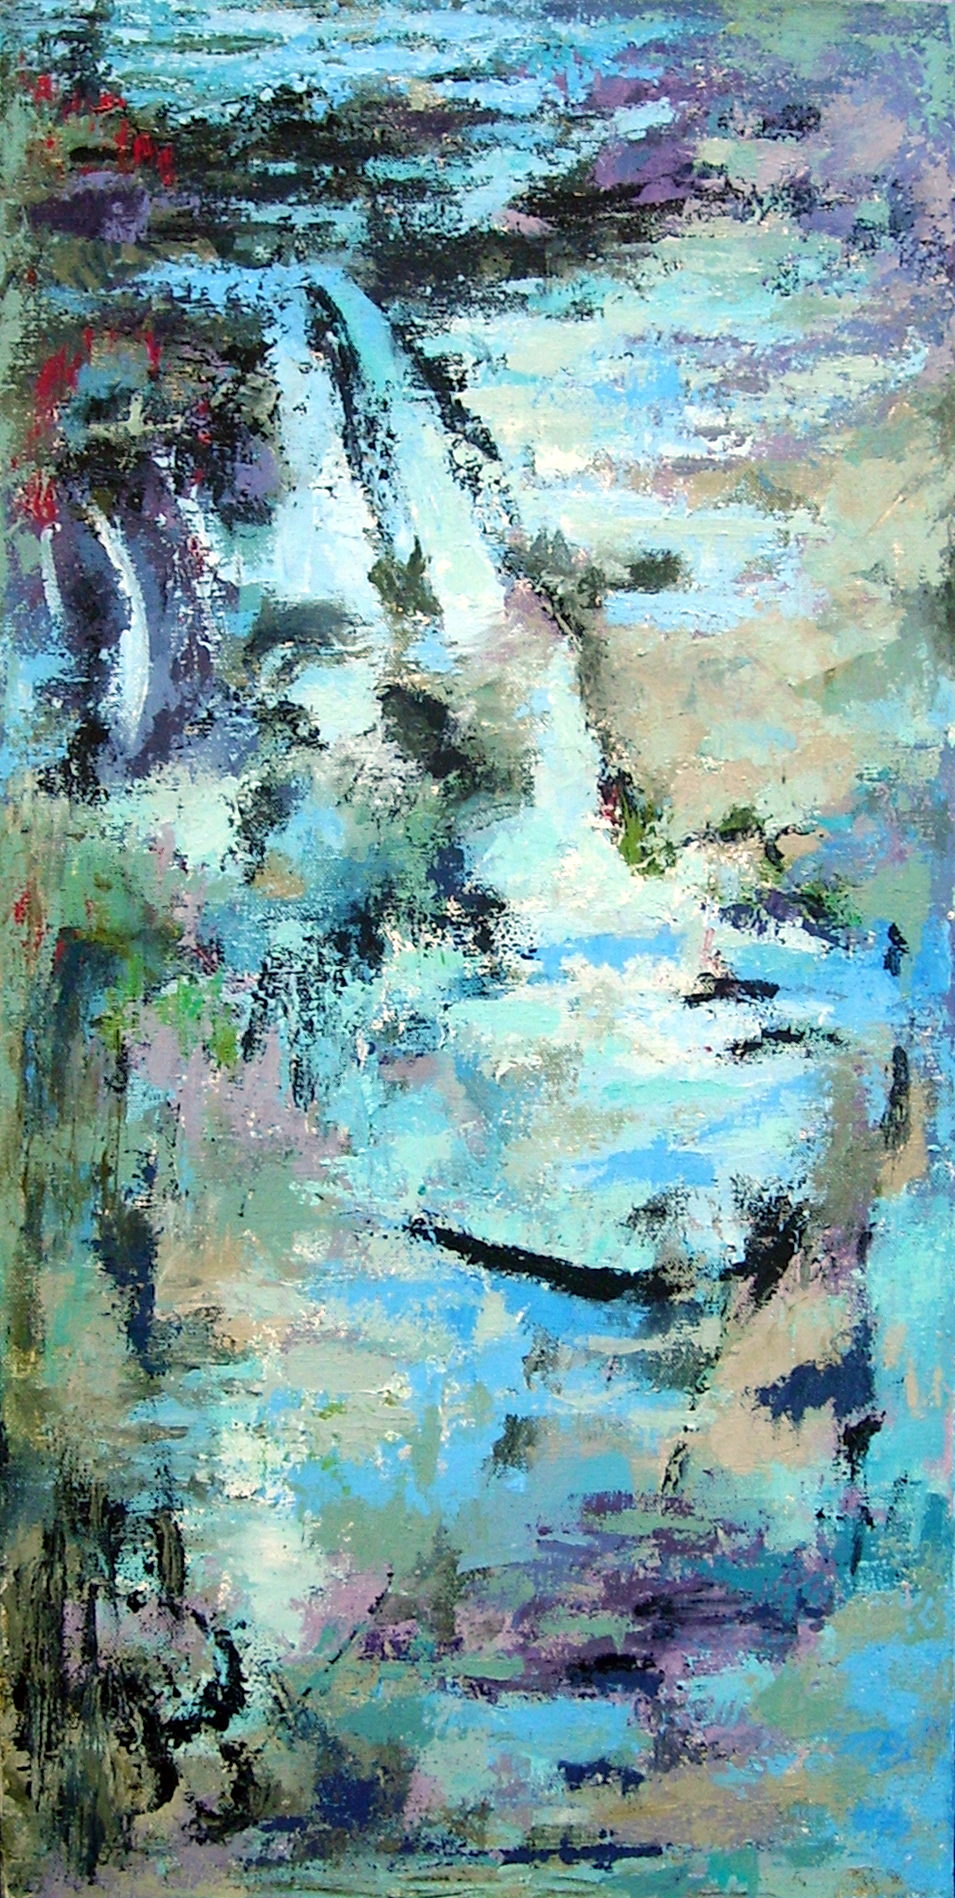 An example of Mary Moldovan's abstract work. One of the main organizers of the Apsley Studio Tour, Moldovan admits the fall tour date provides a useful deadline for participating artists.Photo courtesy Apsley Studio Tour